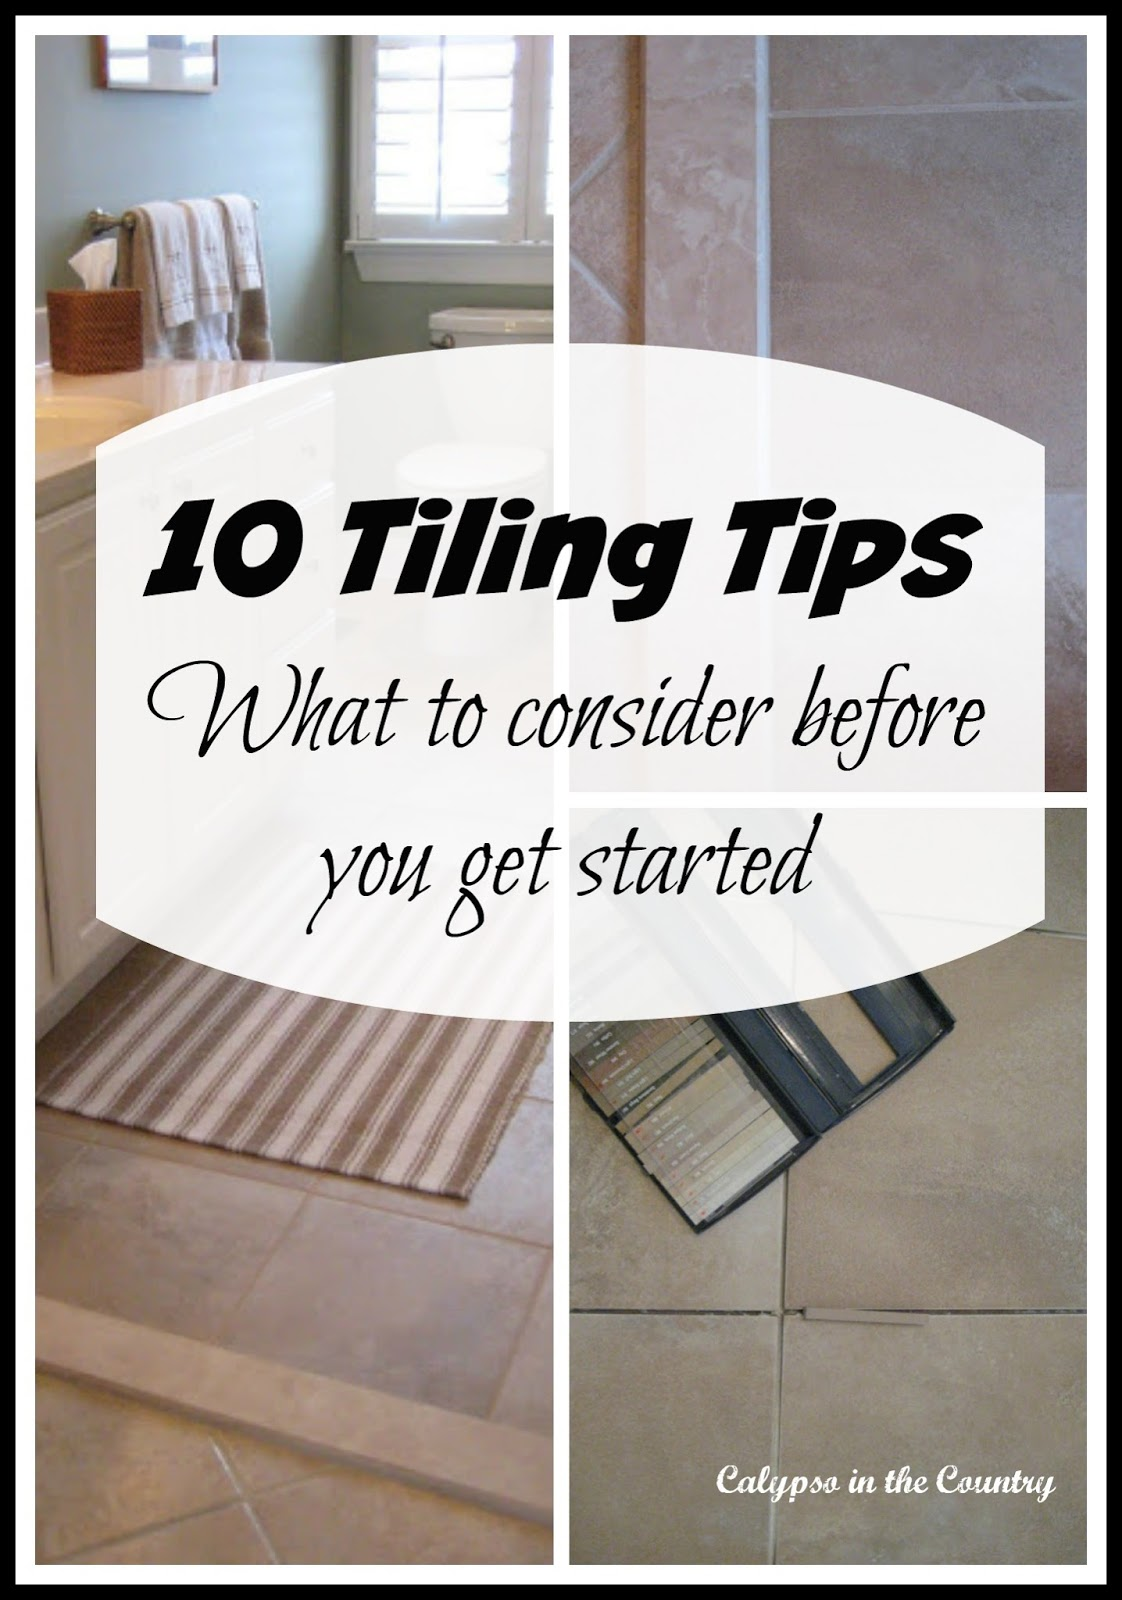 Tips for Tiling a Floor